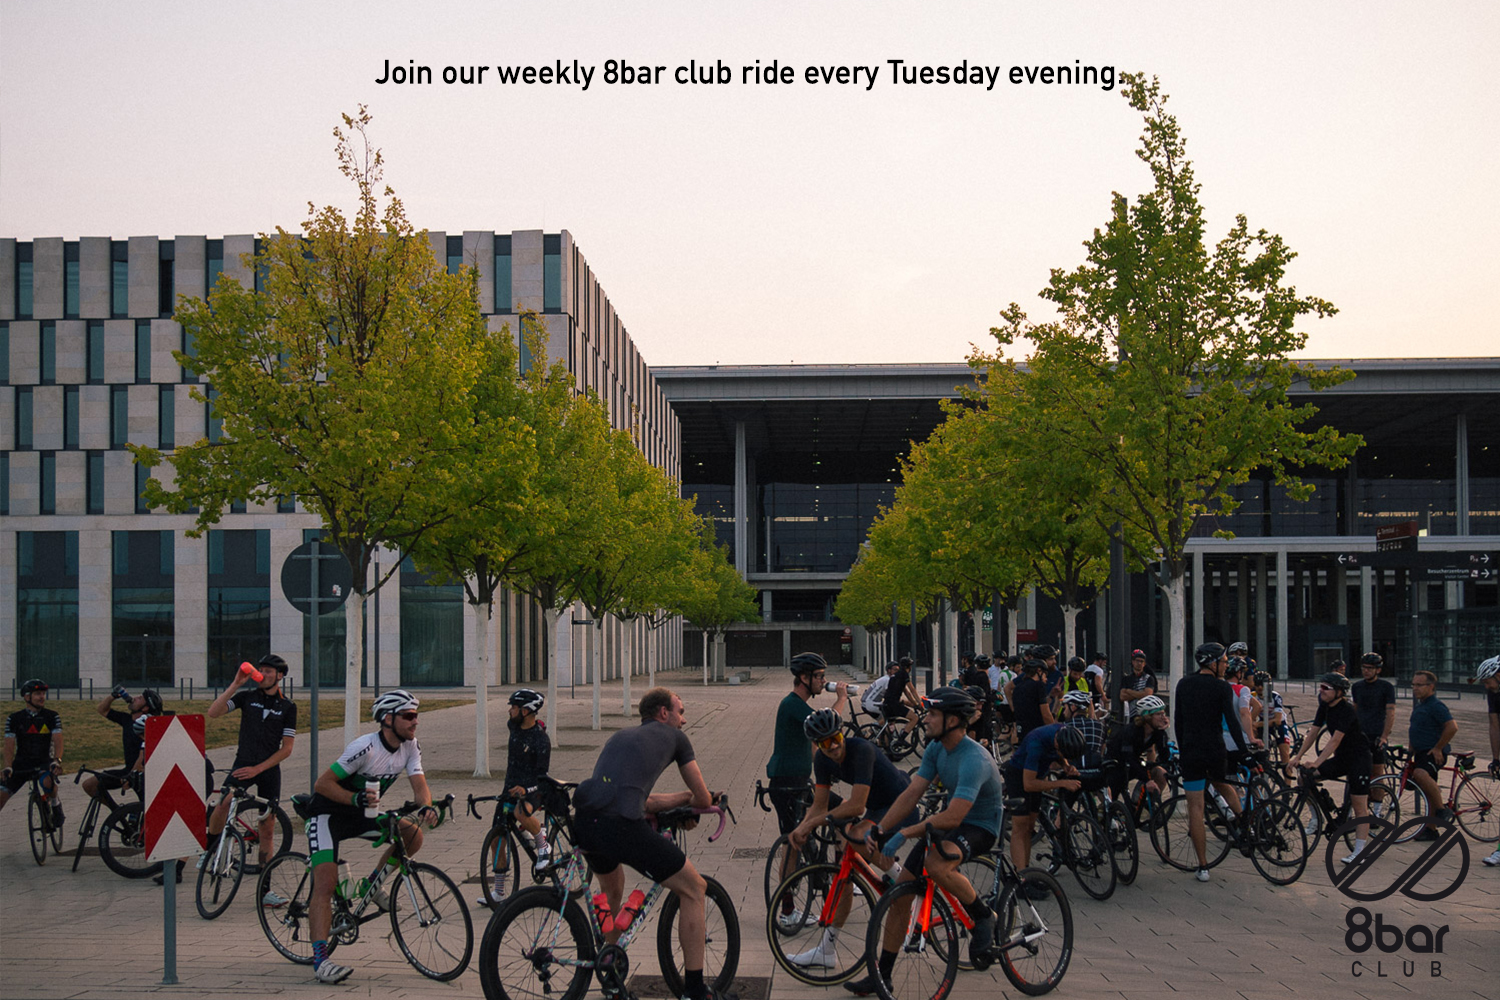 Join our weekly 8bar club ride every Tuesday evening 002